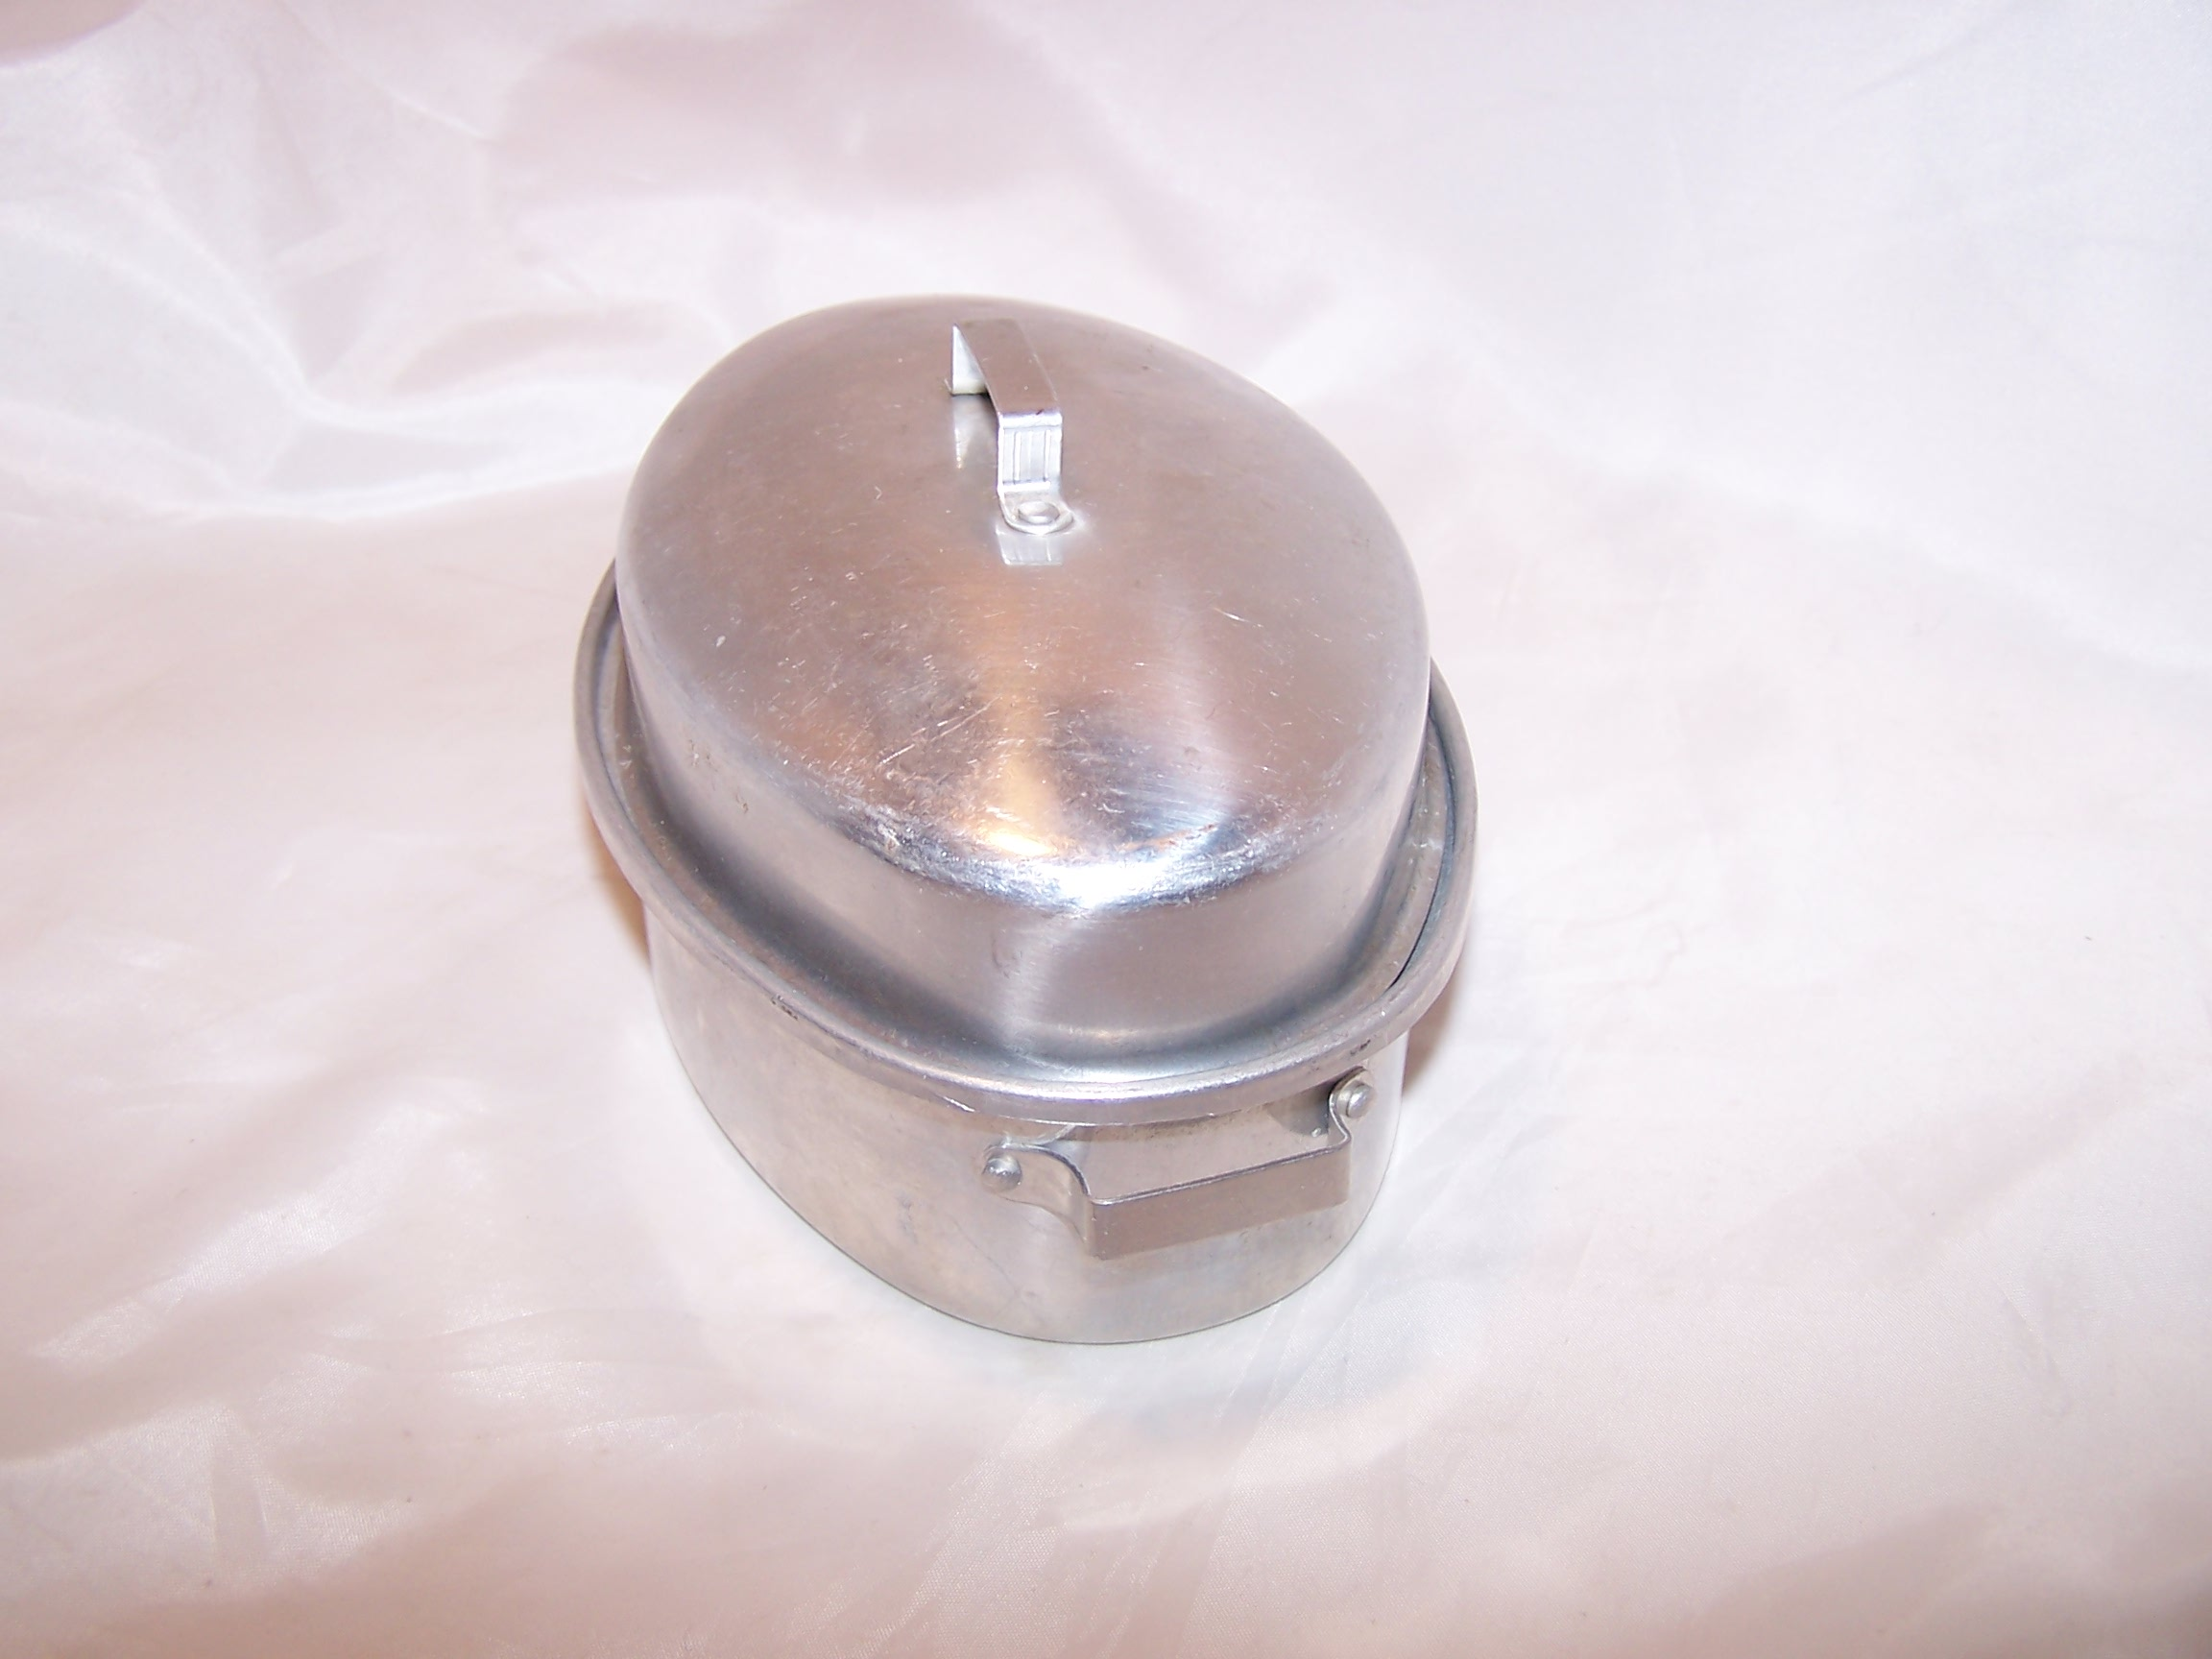 Image 3 of Toy Roaster w Lid, Aluminum, Vintage Childs Toy